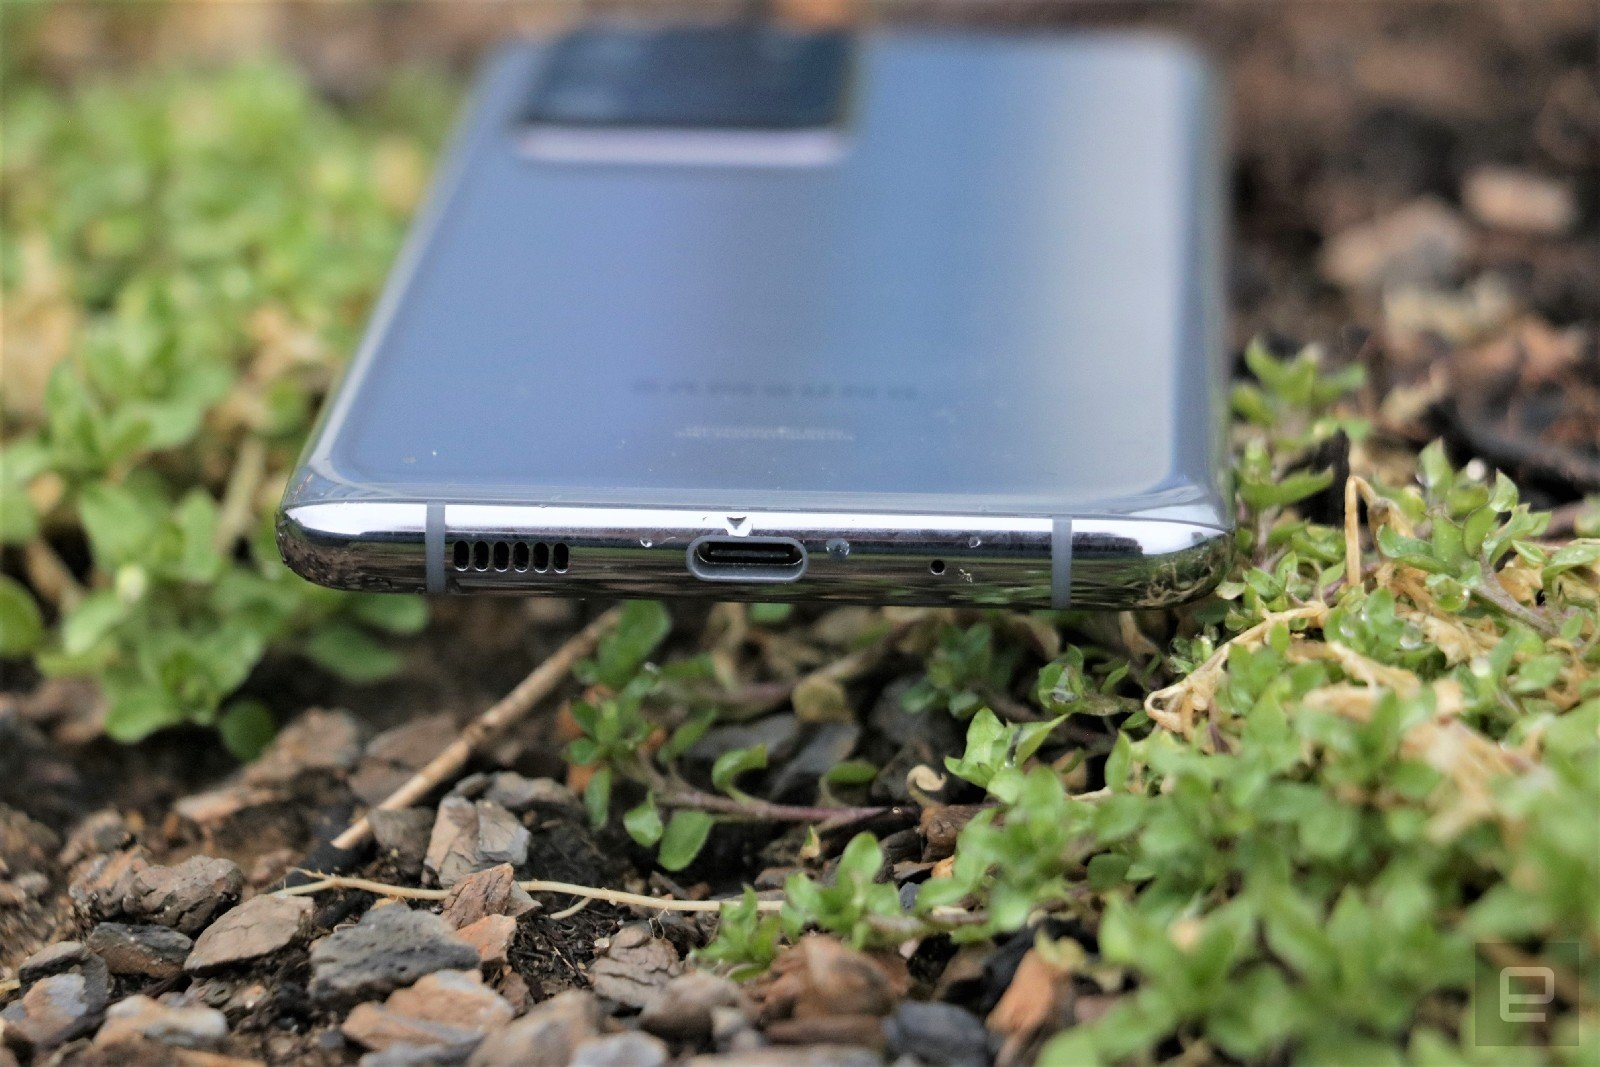 Galaxy S20 Ultra review: Impressive but impractical | DeviceDaily.com